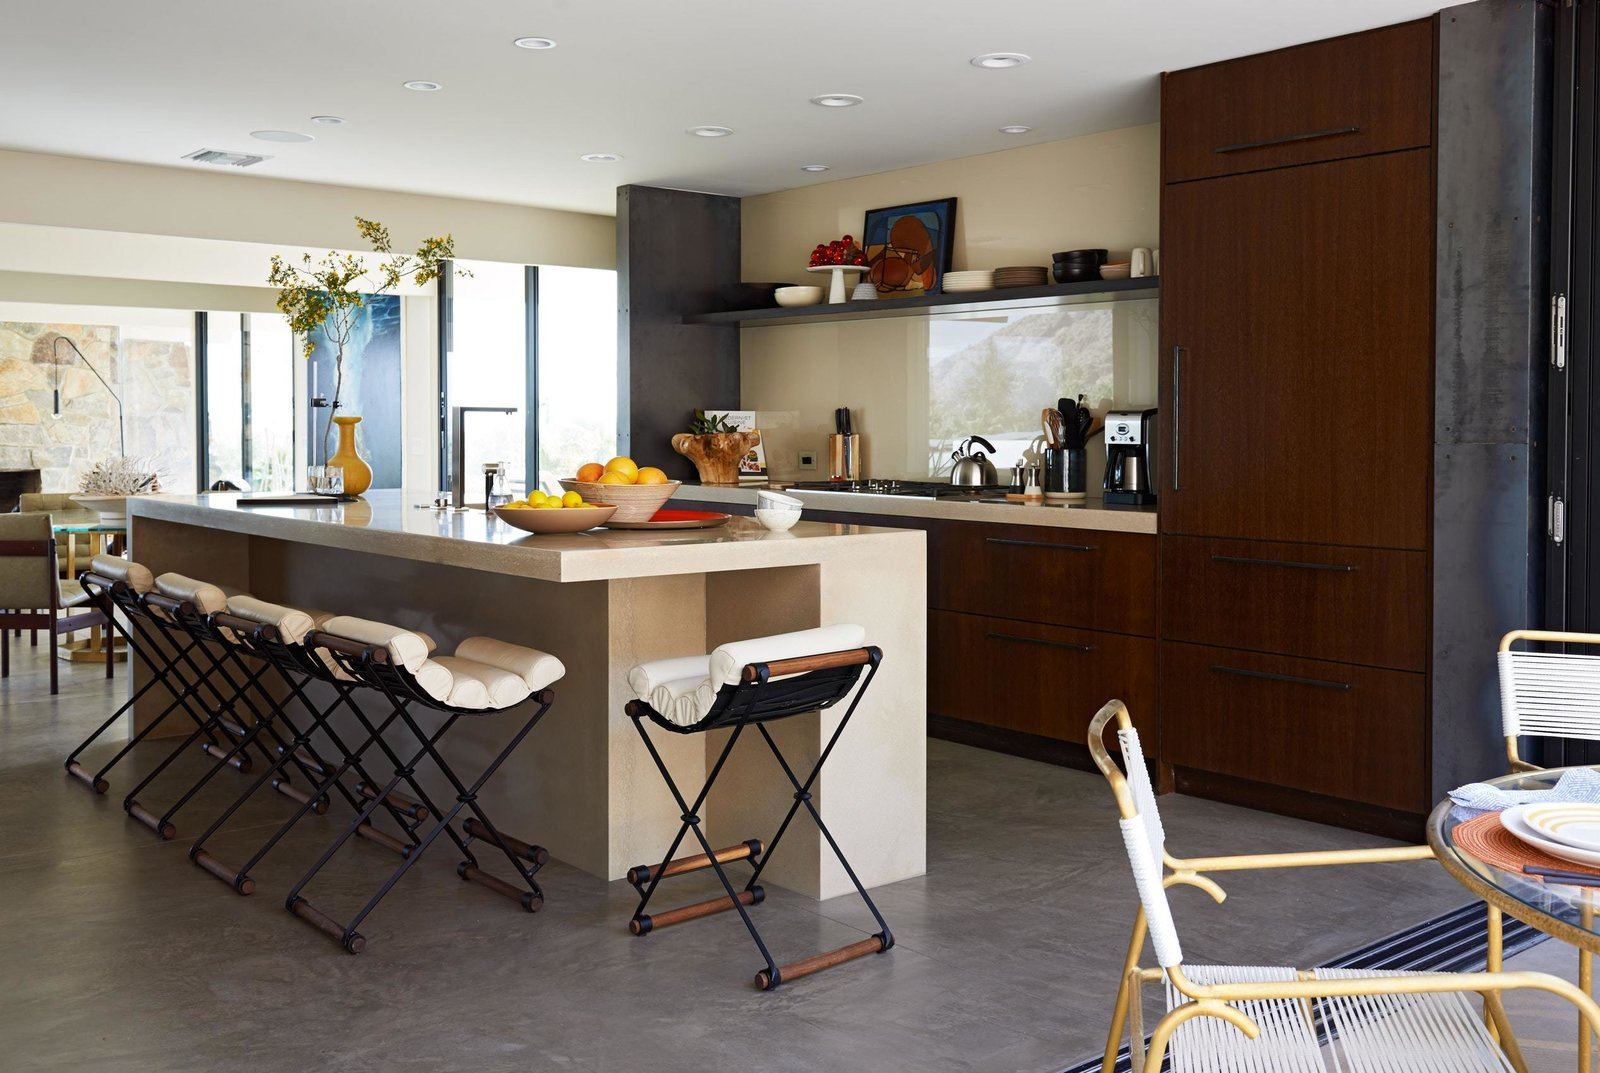 Kitchen, Range, Recessed Lighting, Wood Cabinet, Drop In Sink, and Concrete Floor  On the Rocks